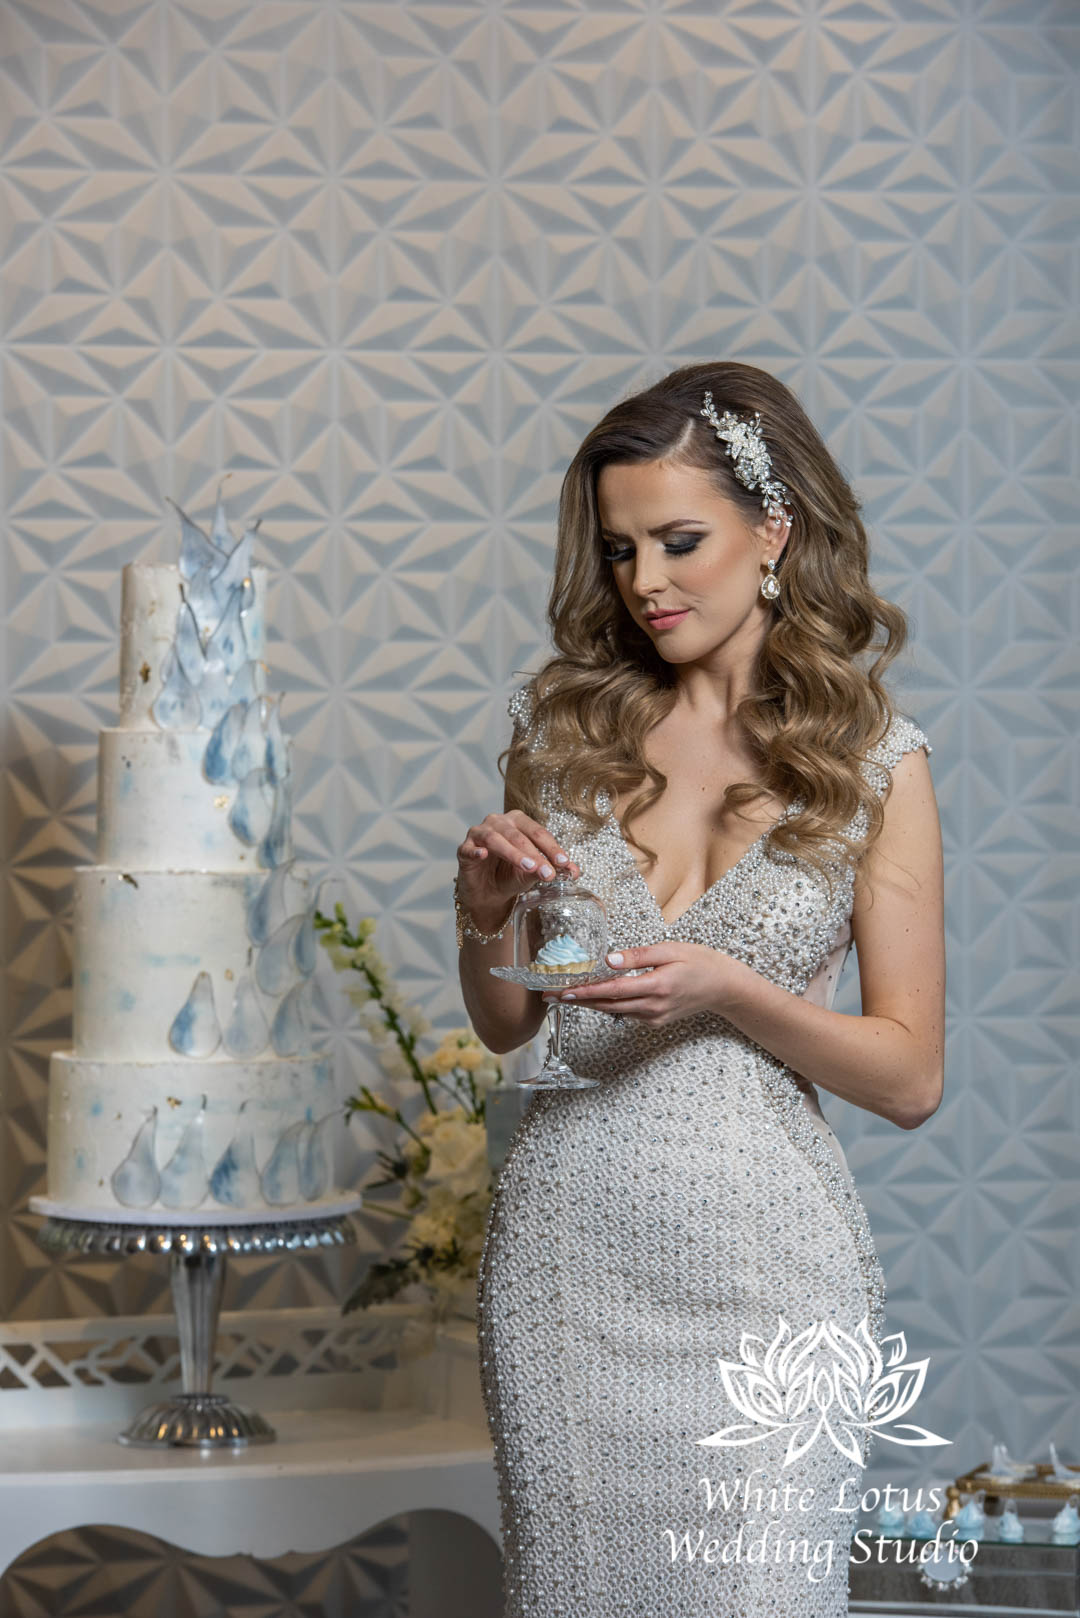 131- GLAM WINTERLUXE WEDDING INSPIRATION